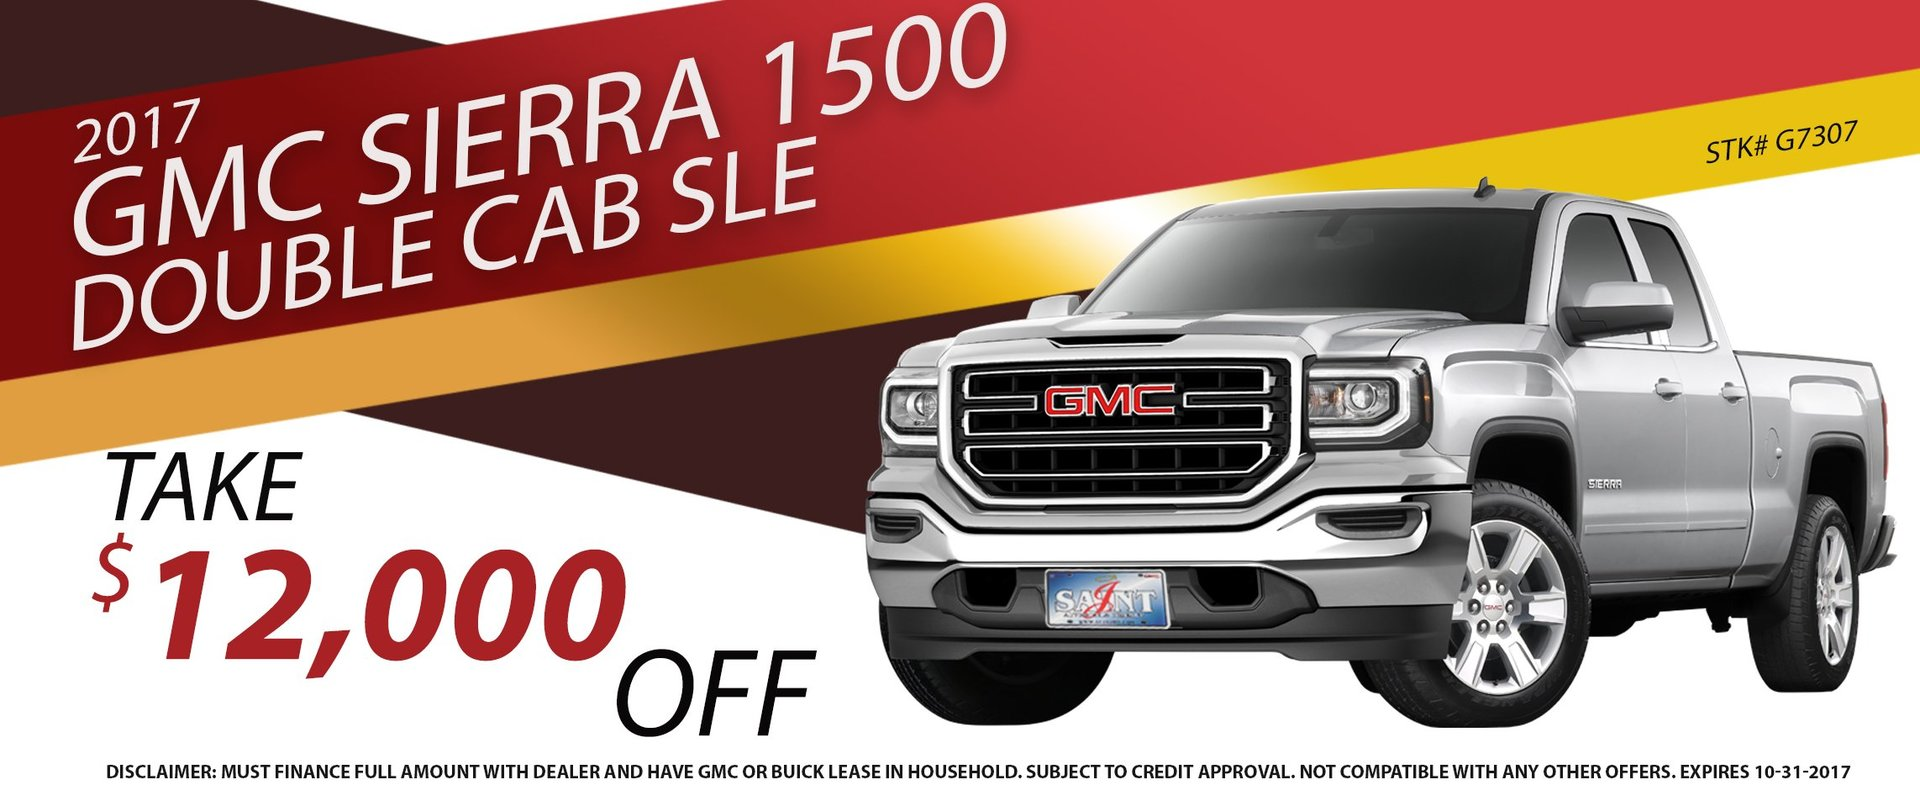 Take $12,000 OFF an all new 2017 GMC Sierra 1500 Double Cab SLE